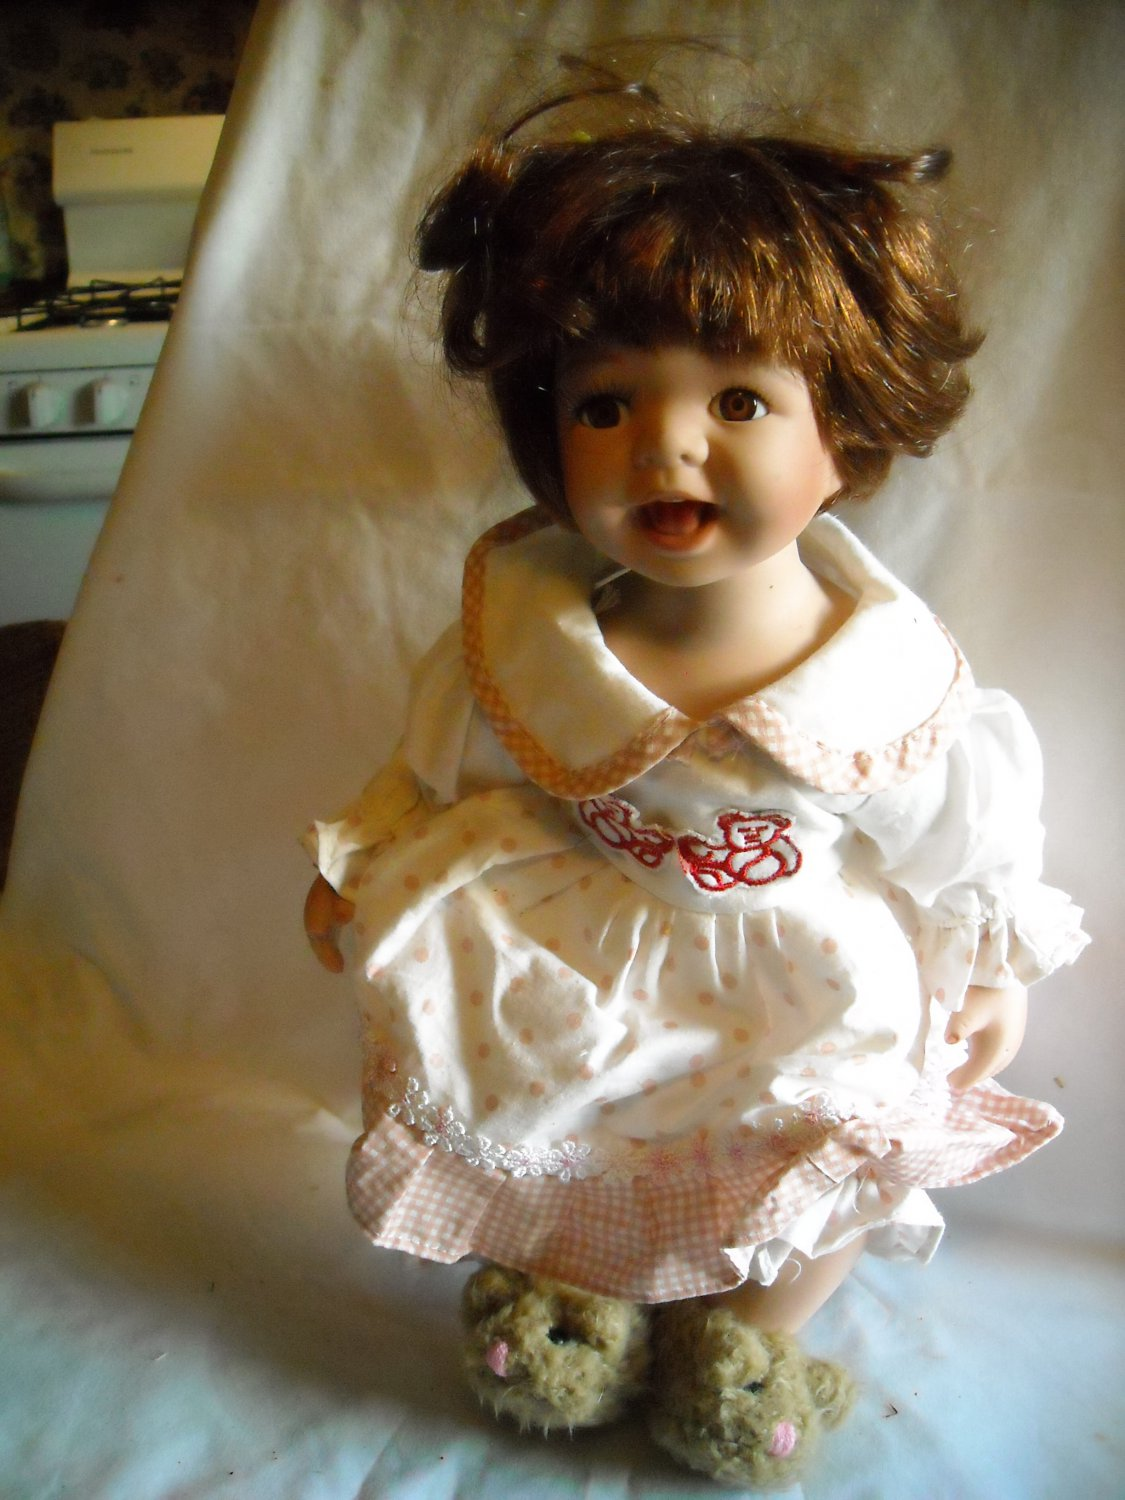 Duck House Heirloom Porcelain Doll White Dress with Pink Polka Dots 14""